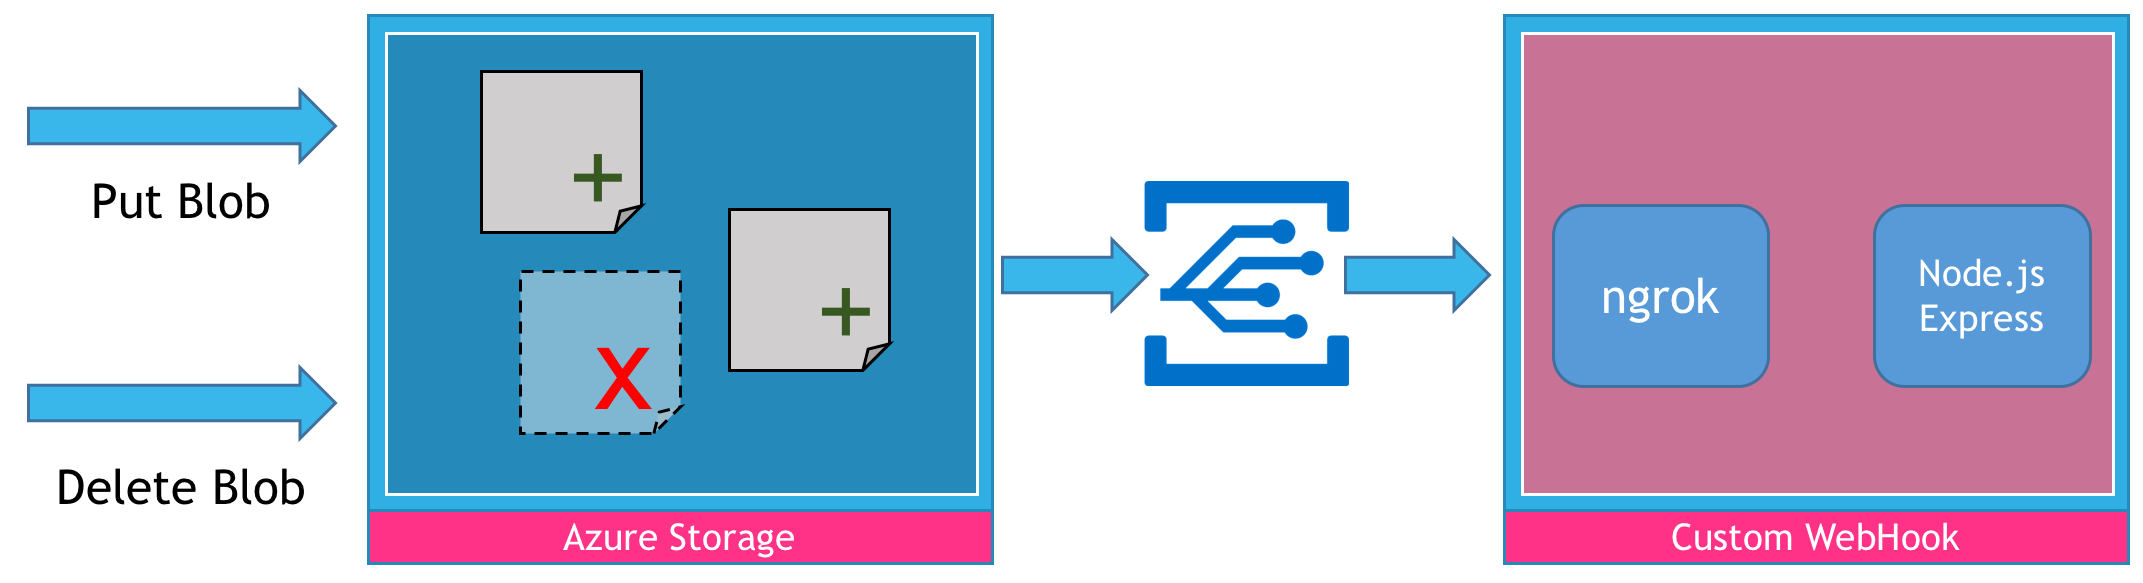 Tutorial: Exploring Azure Event Grid with Custom Webhooks - The New